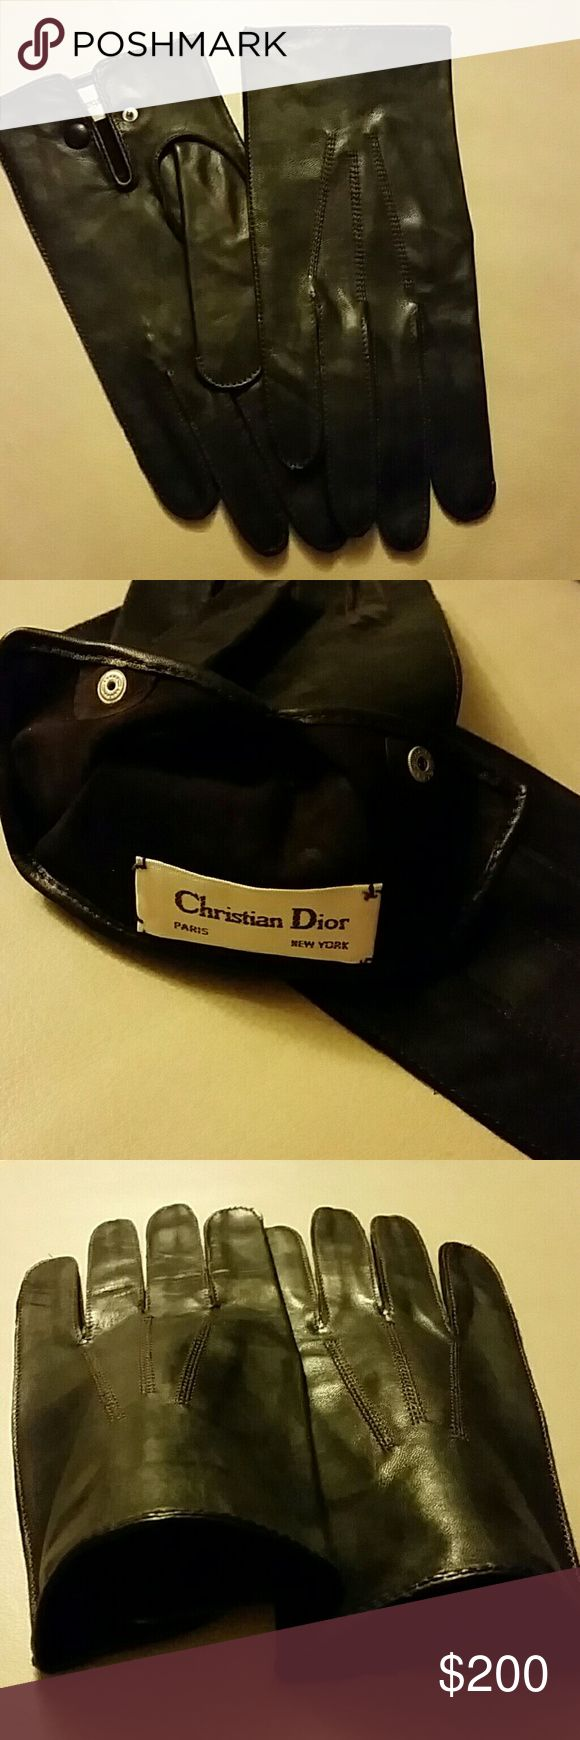 Christian Dior Men's Brown Leather Gloves L New vintage, never worn, unlined driving gloves, leather covered snap closure, made in Hungary. Beautiful condition. See last pic for tiny pin holes. Firm unless bundled with other high priced item. Christian Dior Accessories Gloves